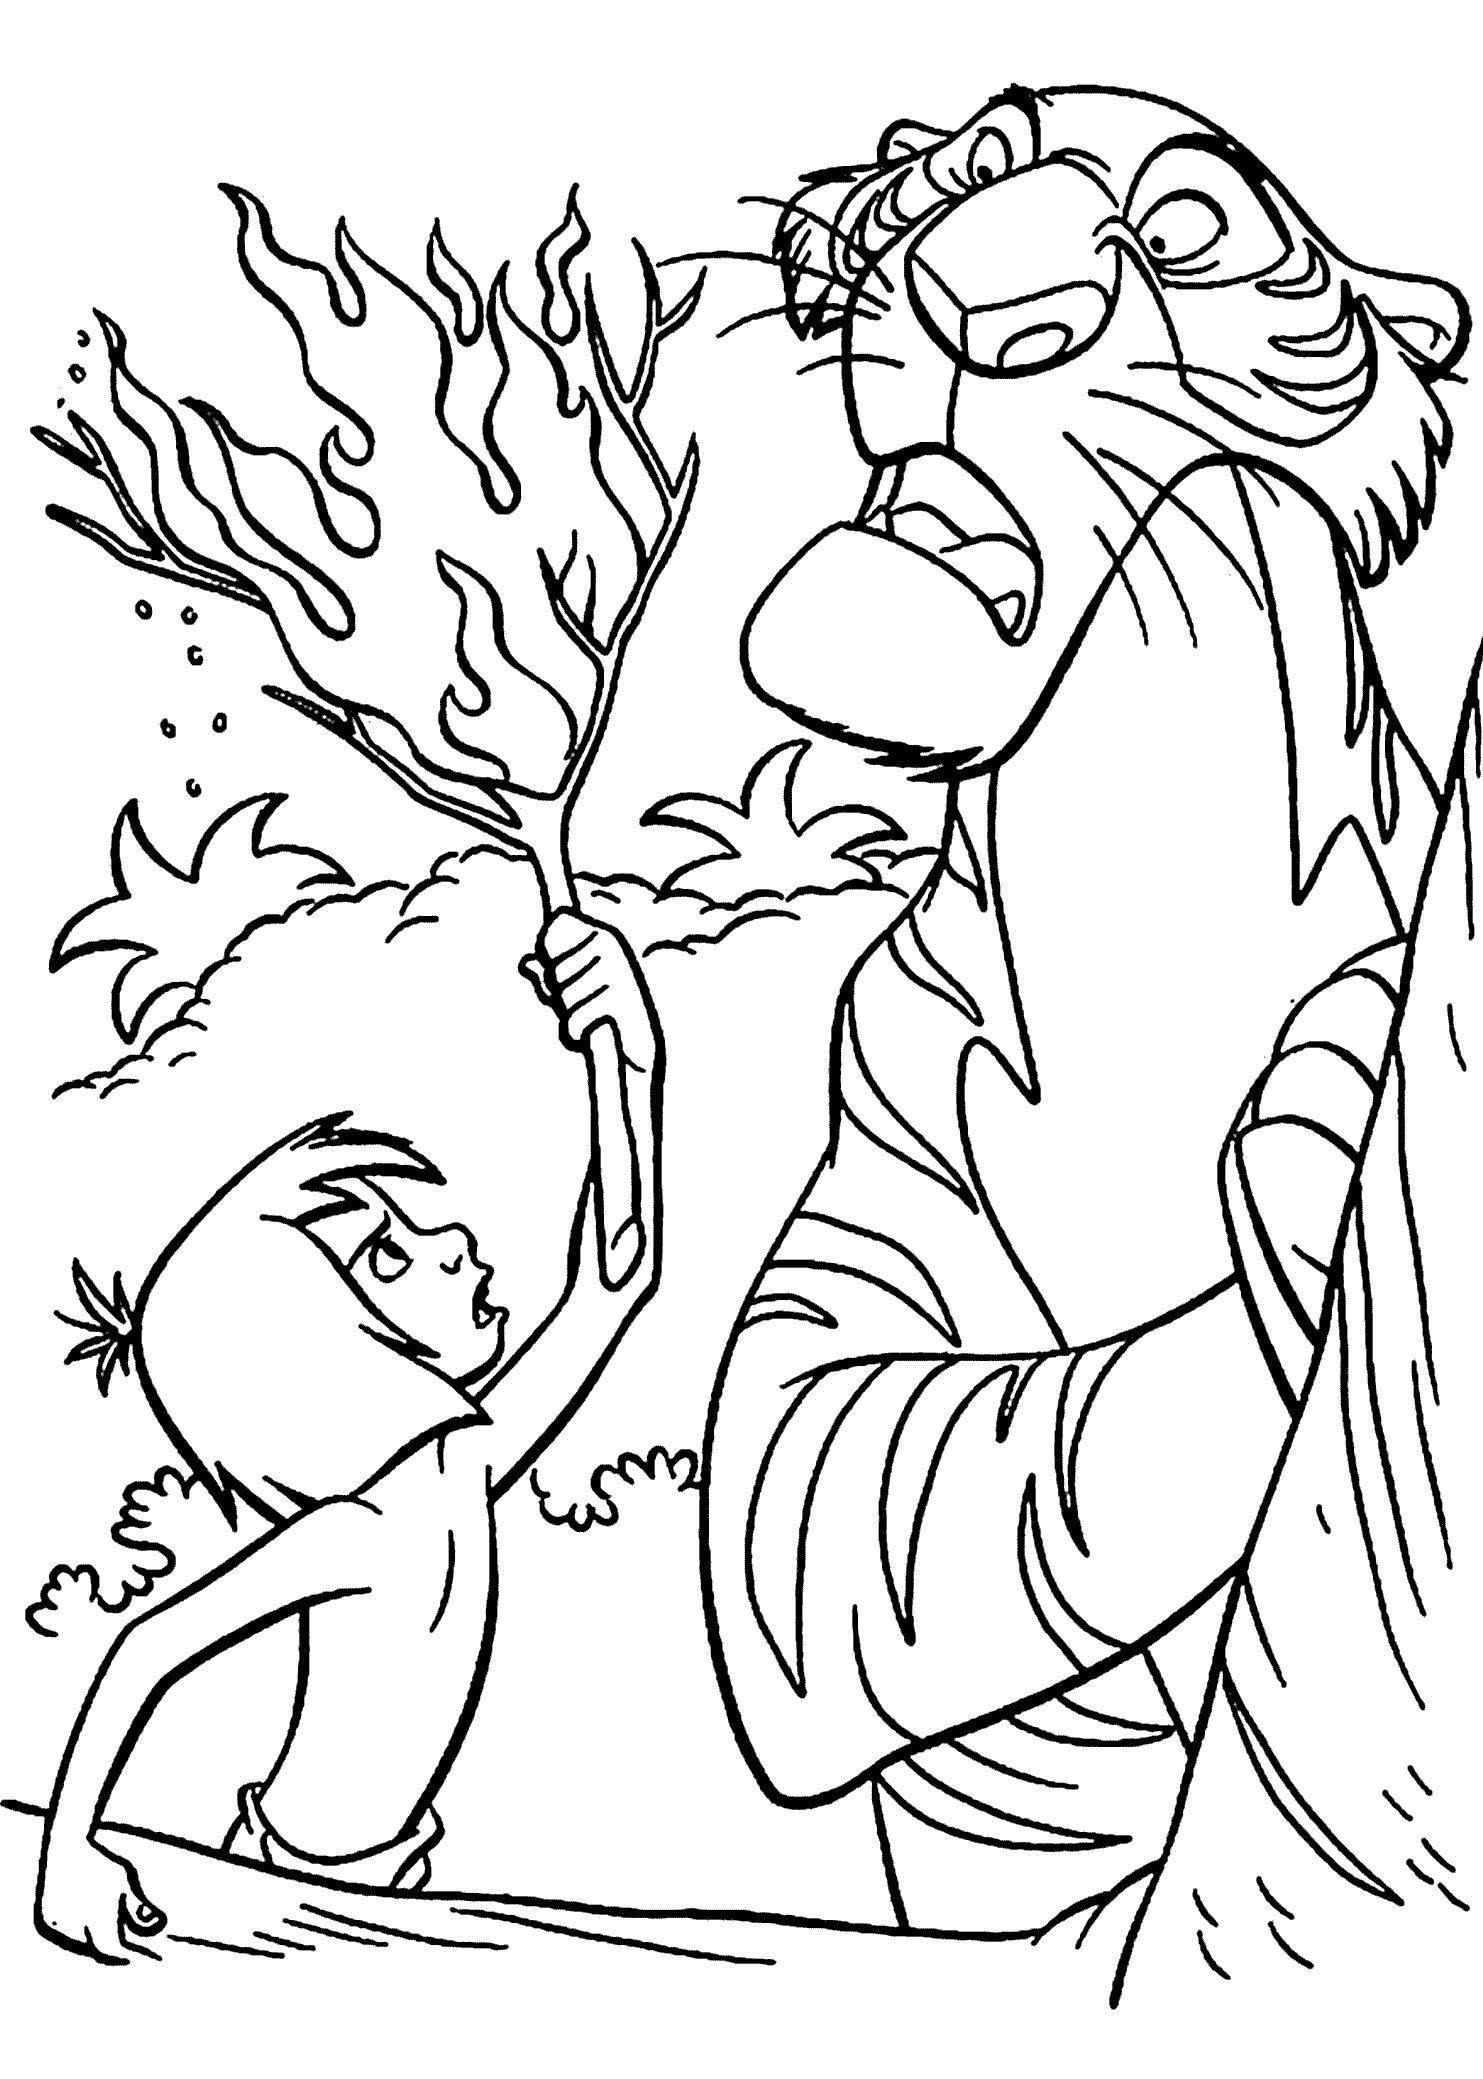 Disney jungle book coloring pages - Mowgli And Shir Khan Coloring Page Disney S Jungle Book